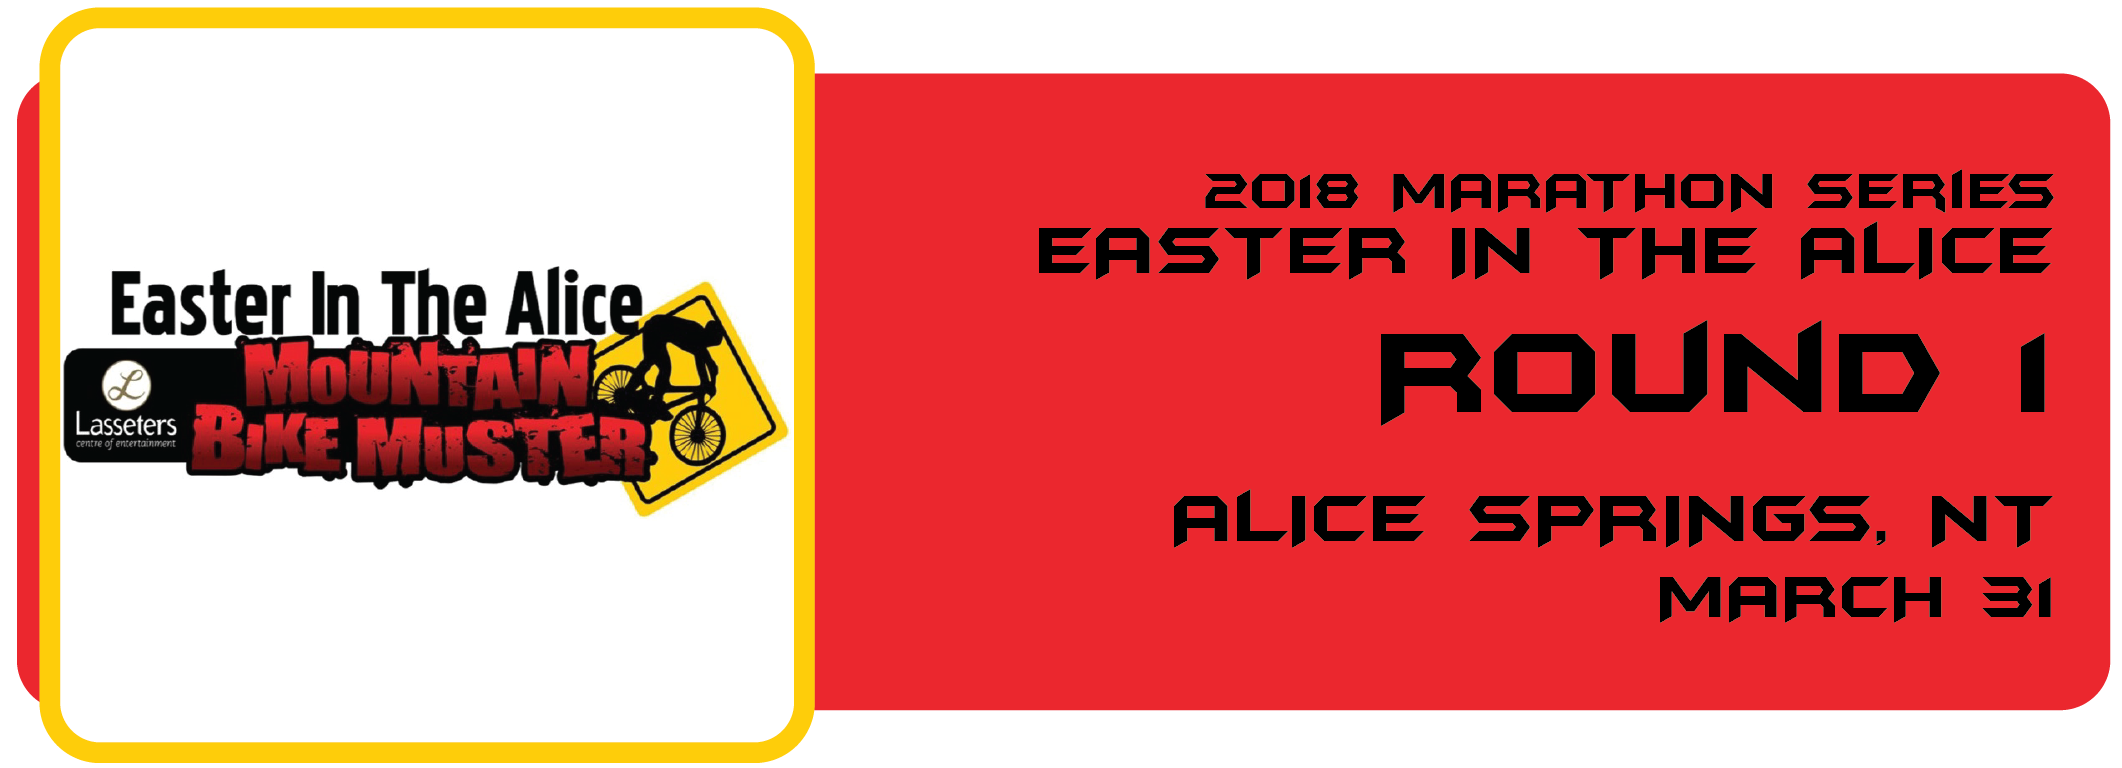 Marathon Series - Easter in the Alice